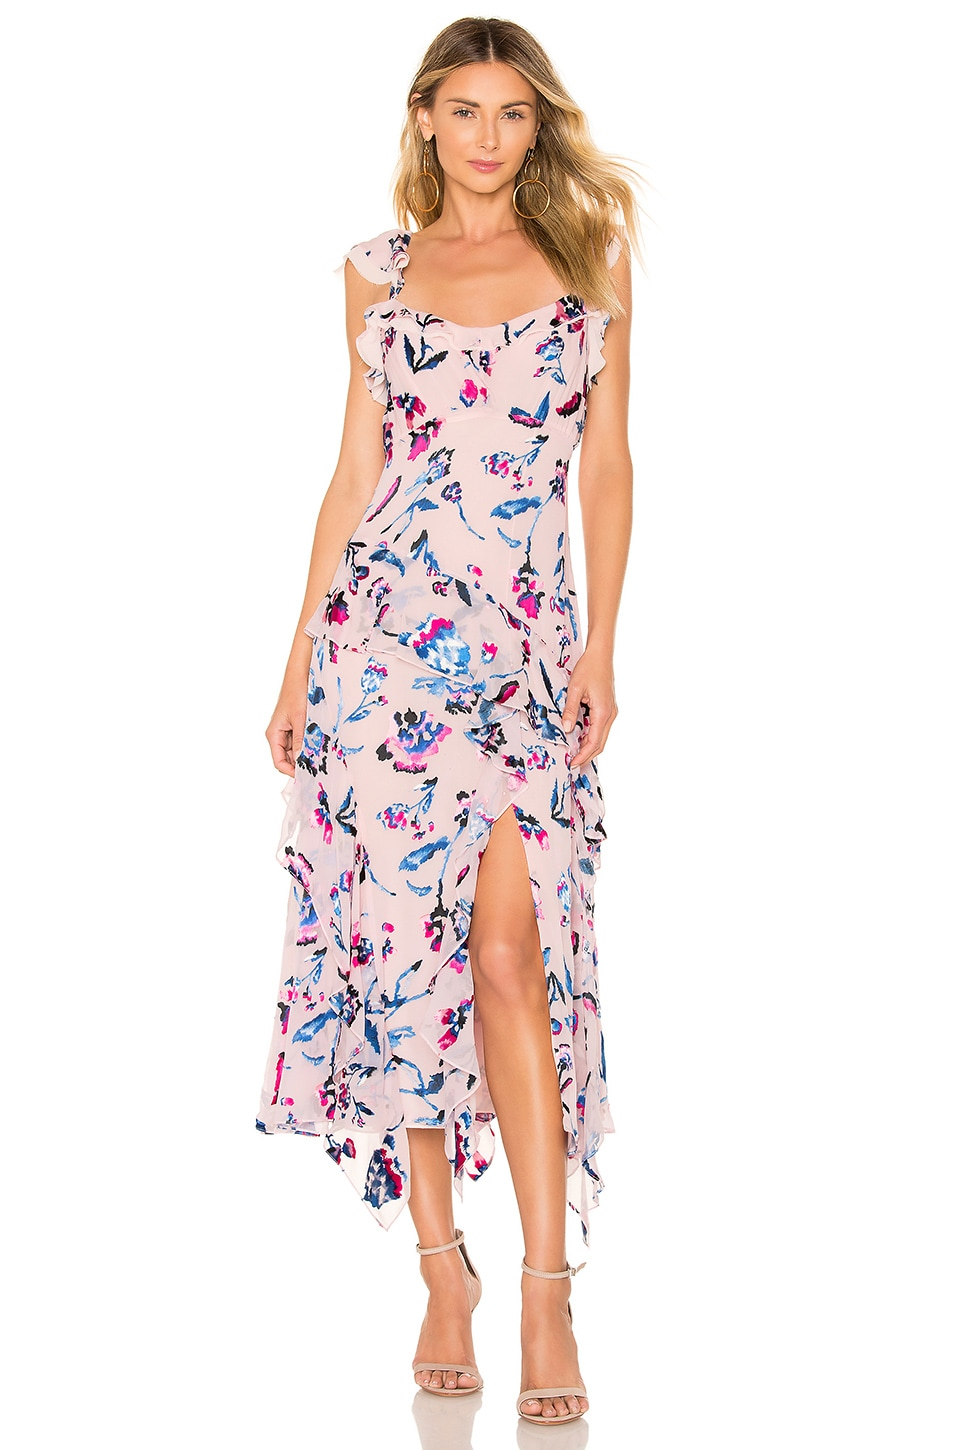 Tanya Taylor Violeta Tie Dye Floral Dress in Pink